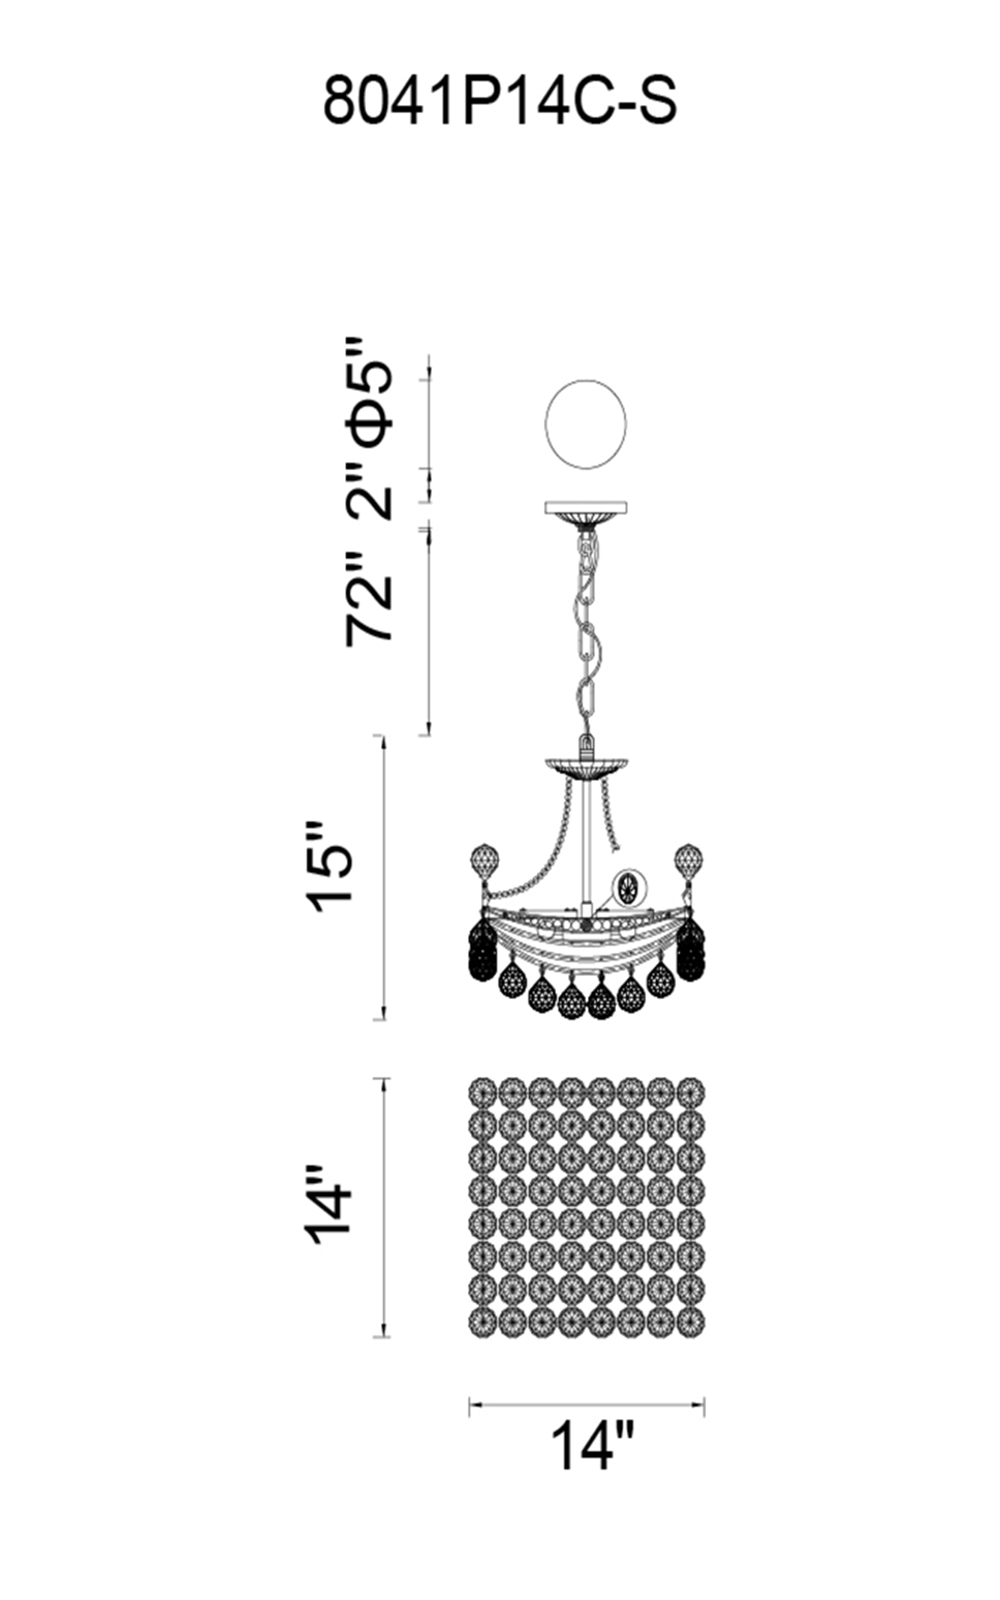 CWI Lighting Jasmine 4 Light Chandelier With Chrome Finish Model: 8041P14C-S Line Drawing